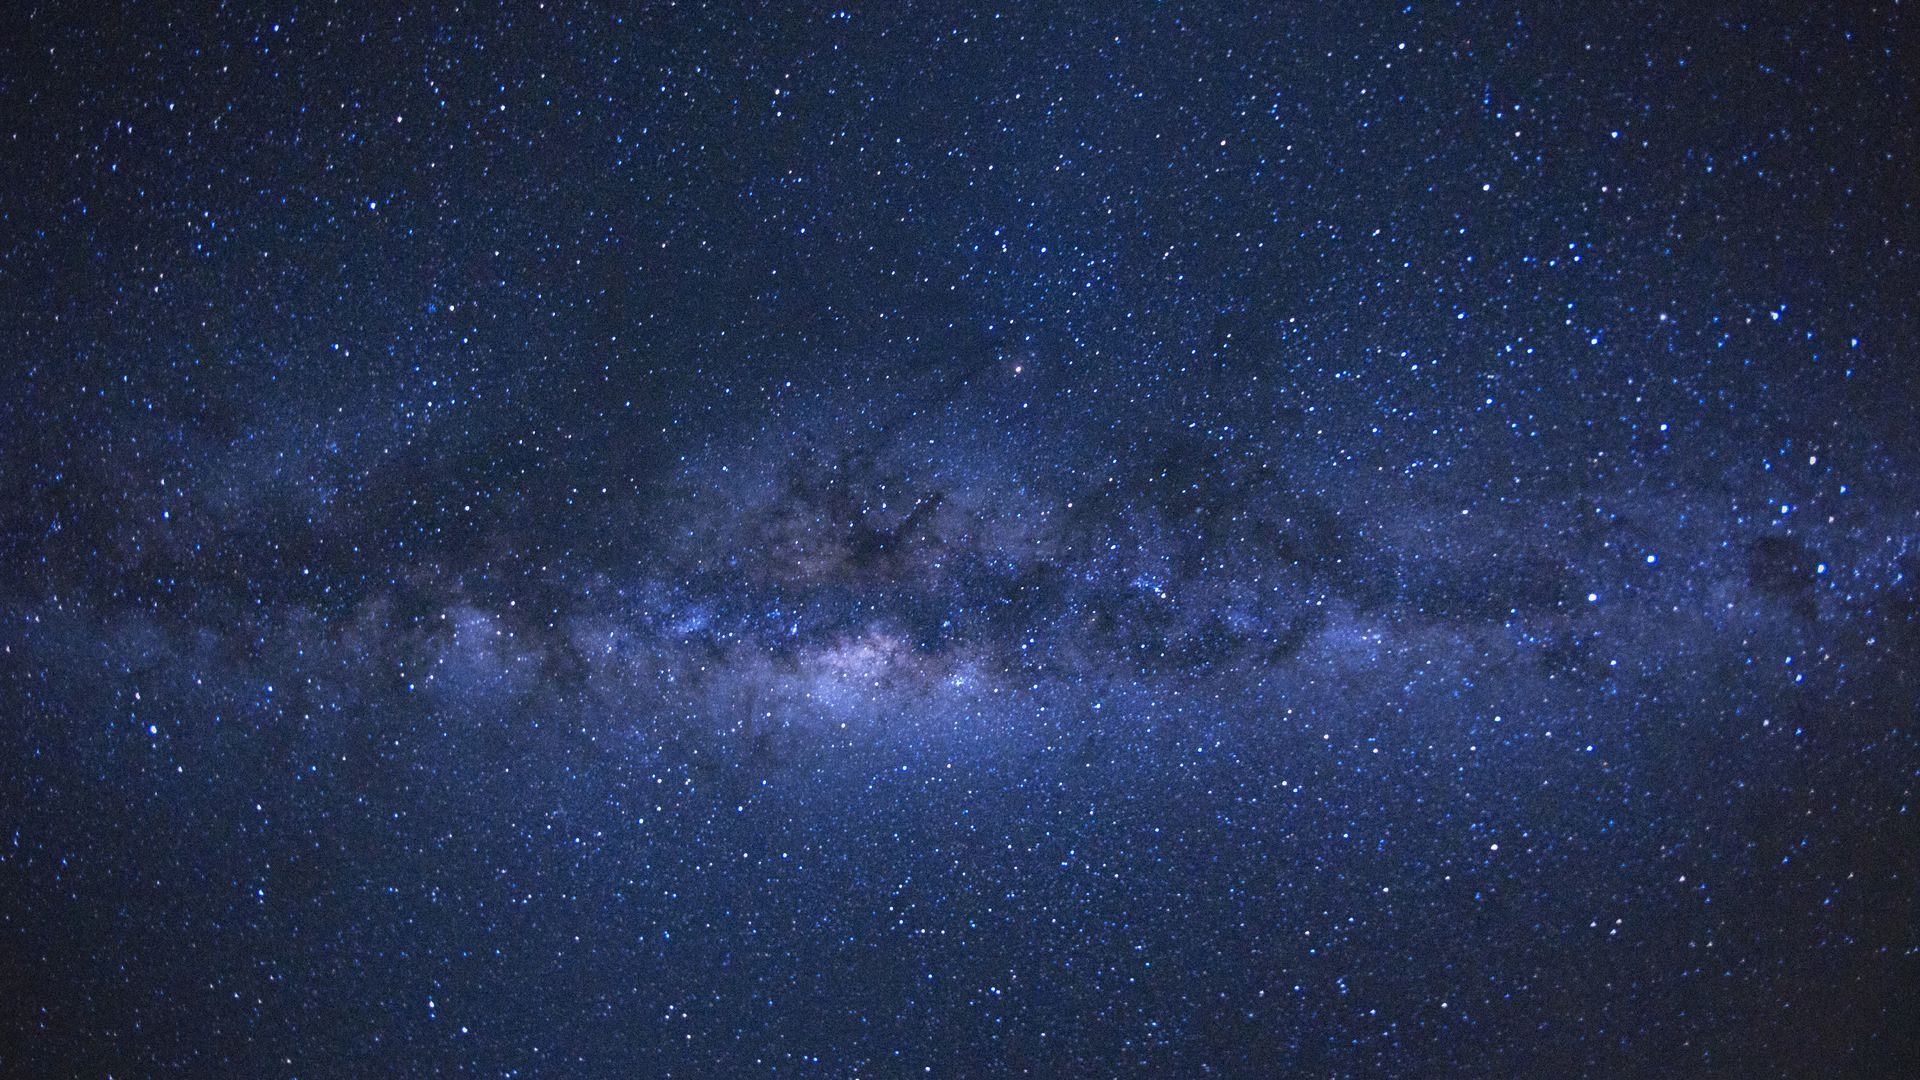 The Milky Way as seen from the French island of Reunion in the Indian Ocean.